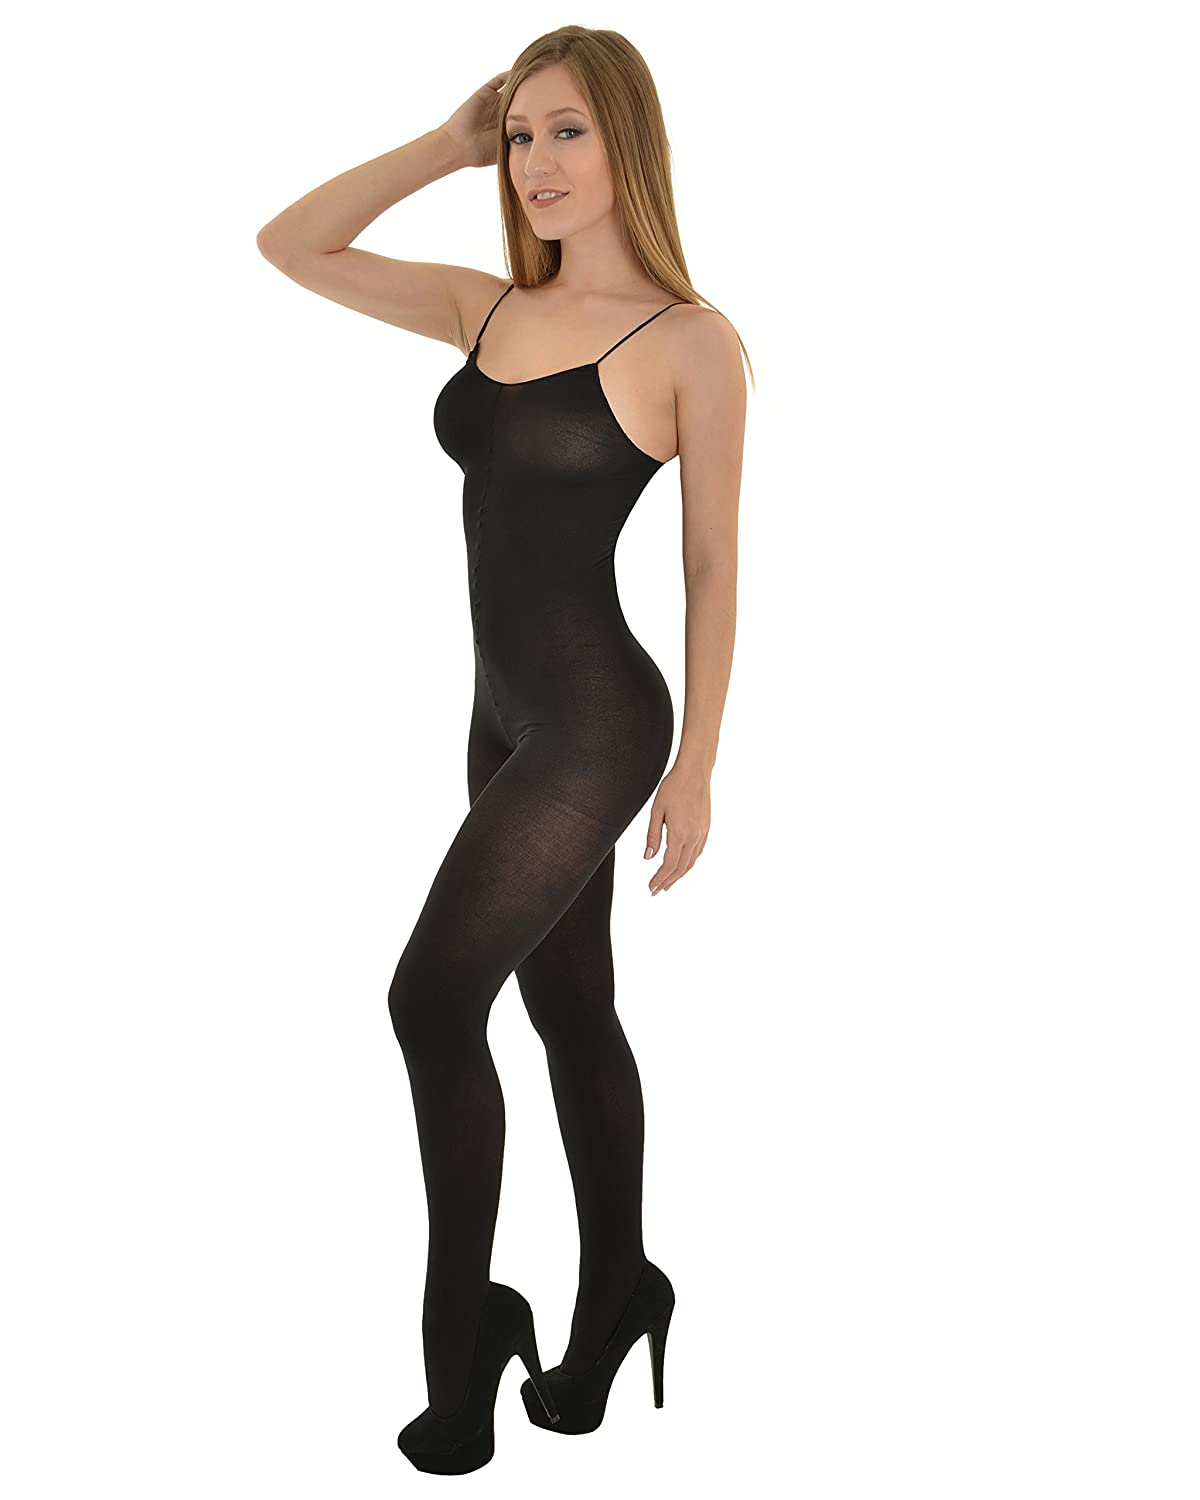 3e09c98532e Amazon.com  Womens One Piece Bodysuit Crotchless Body Stocking Opaque Nude  White or Black Color  Black  Adult Exotic Lingerie Bodystockings  Clothing